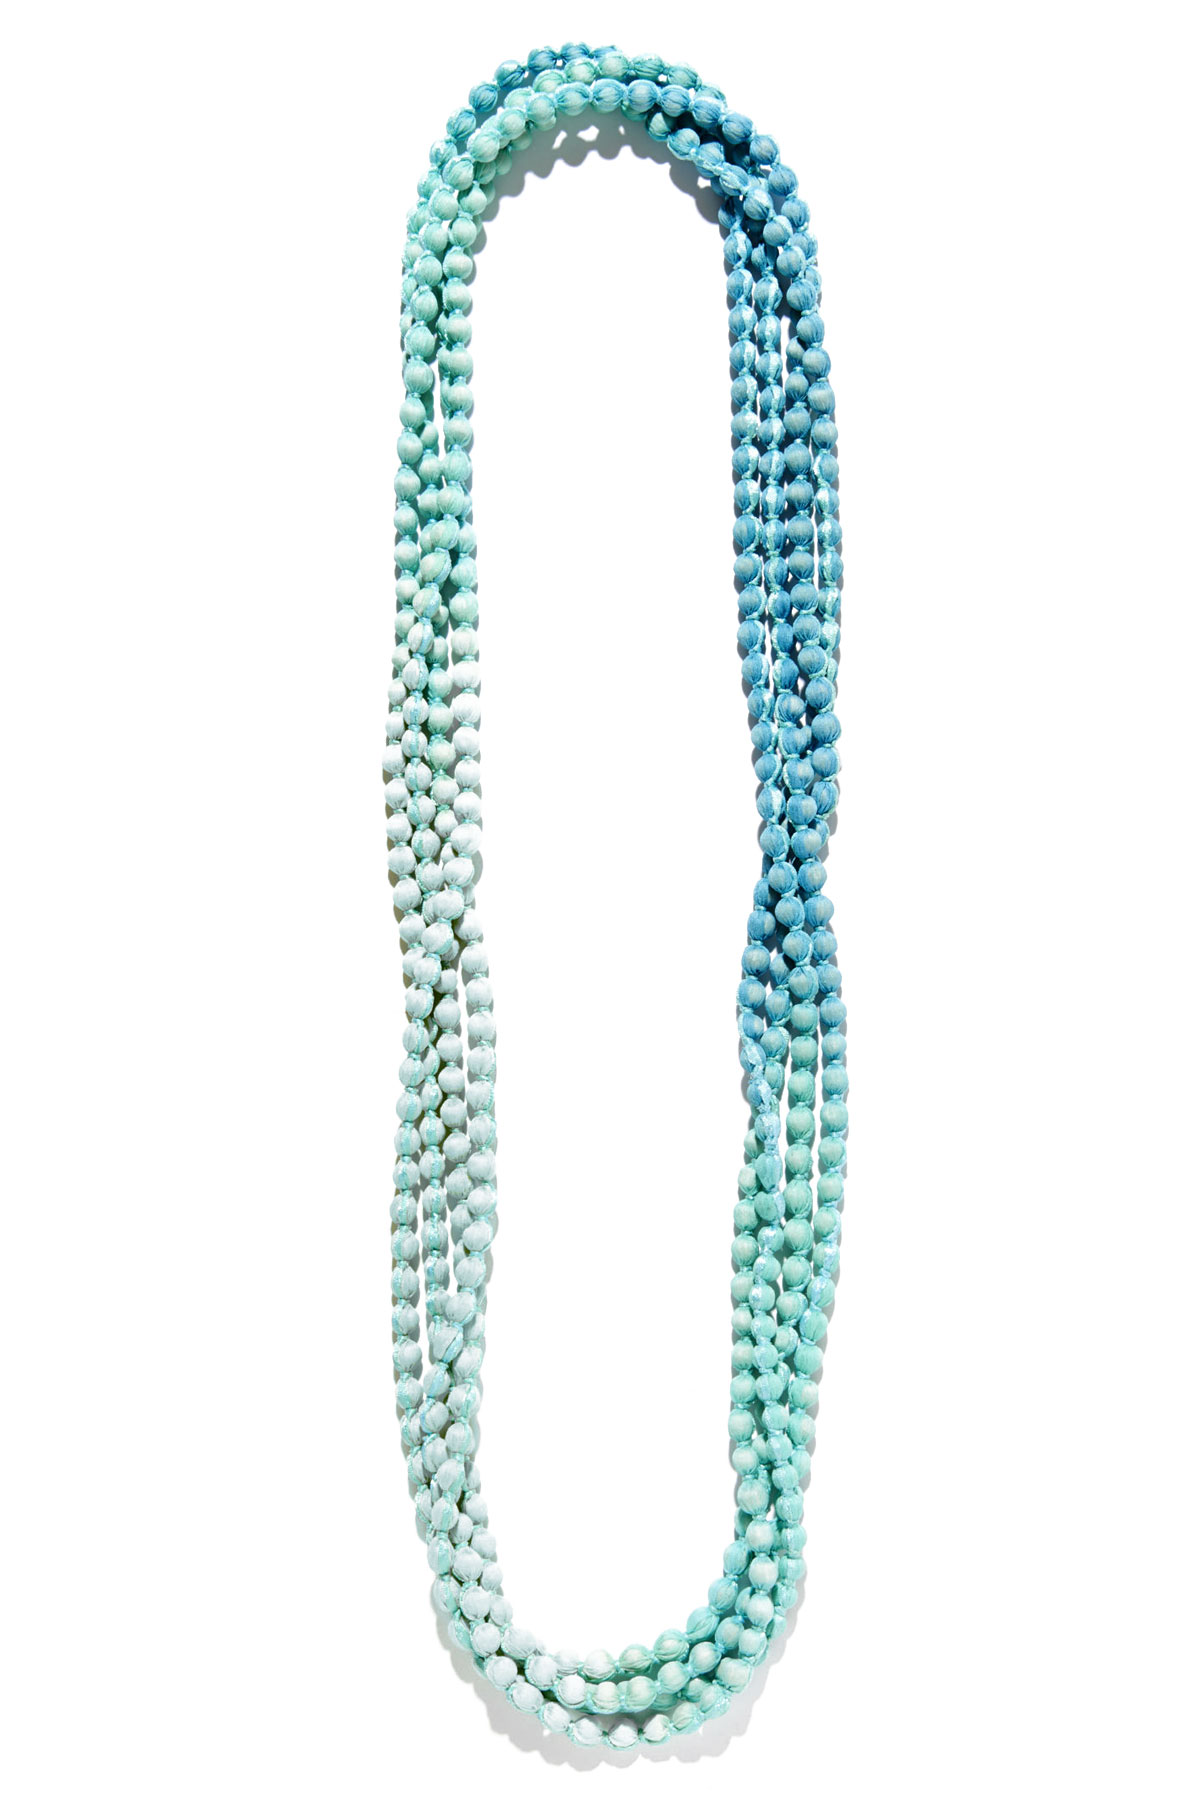 Gudli Ombre Pom Pom Necklace - Turquoise 1